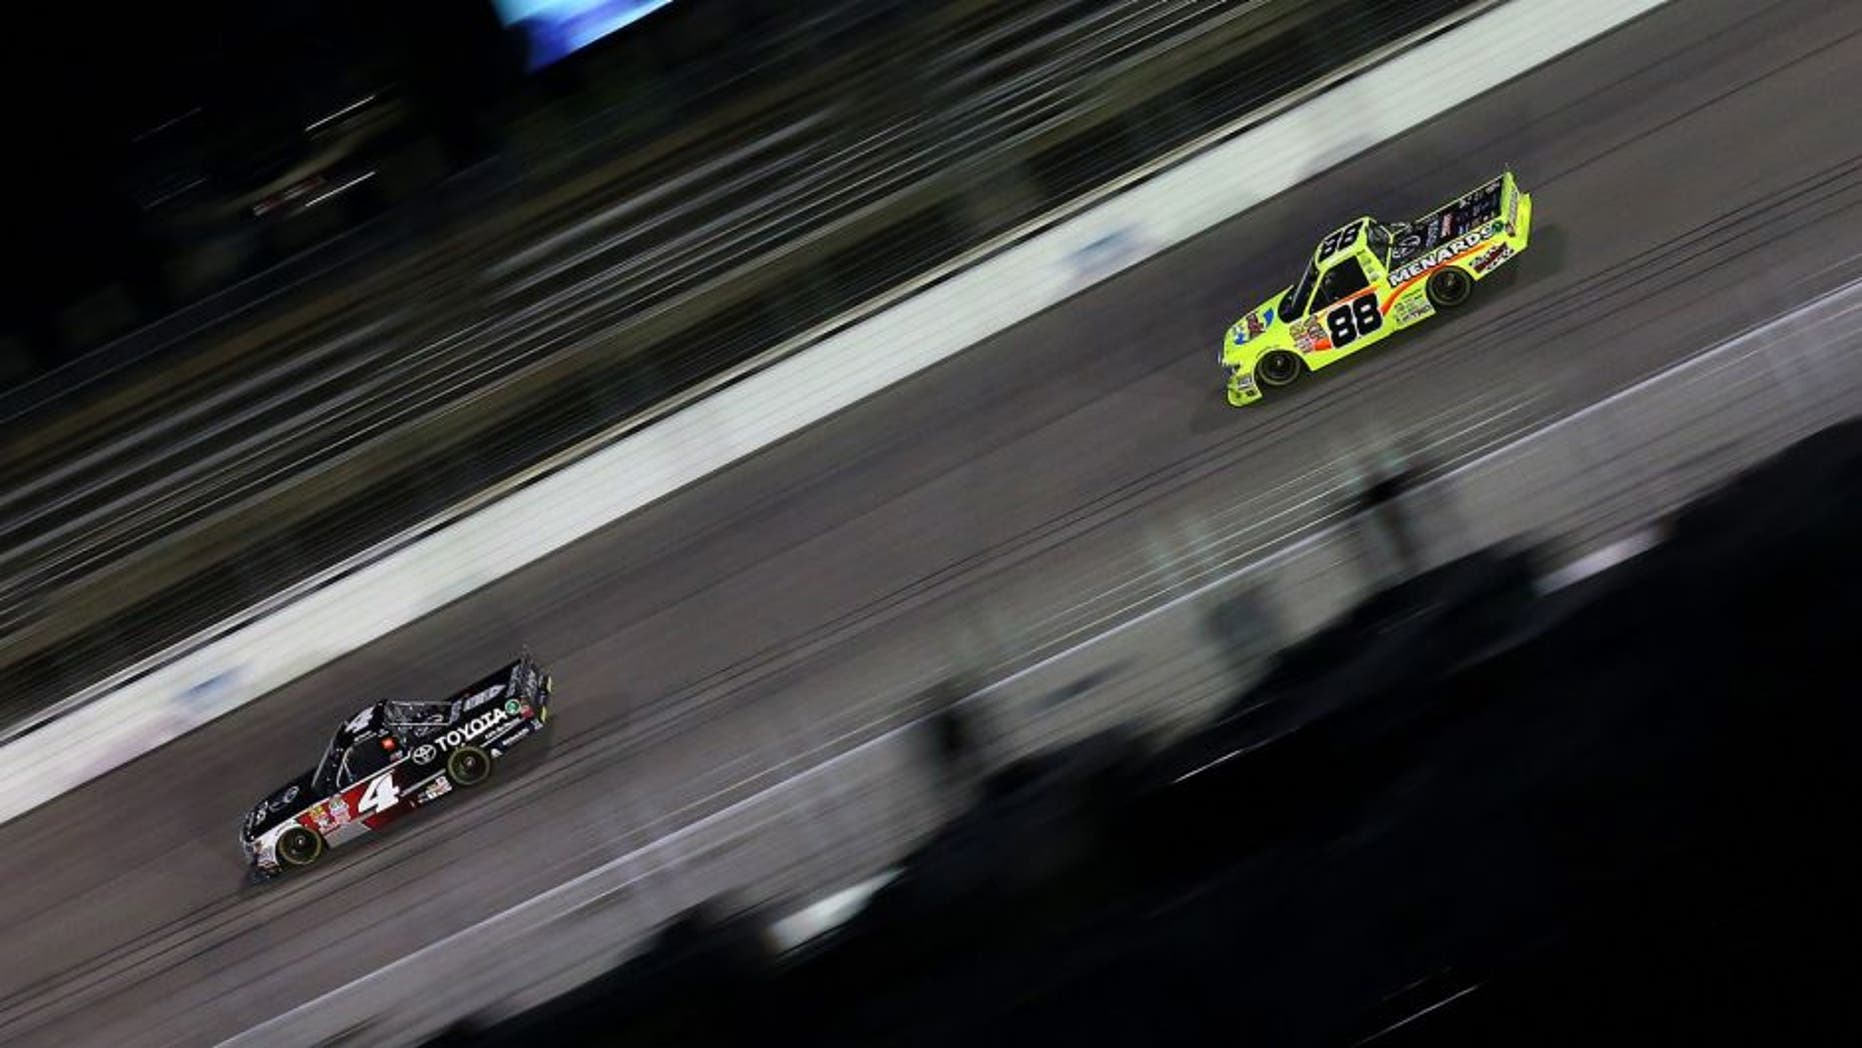 FORT WORTH, TX - NOVEMBER 06: Erik Jones, driver of the #4 Toyota, leads Matt Crafton, driver of the #88 Damp Rid/Menards Toyota, during the NASCAR Camping World Truck Series WinStar World Casino 350 at Texas Motor Speedway on November 6, 2015 in Fort Worth, Texas. (Photo by Sarah Crabill/Getty Images for Texas Motor Speedway)